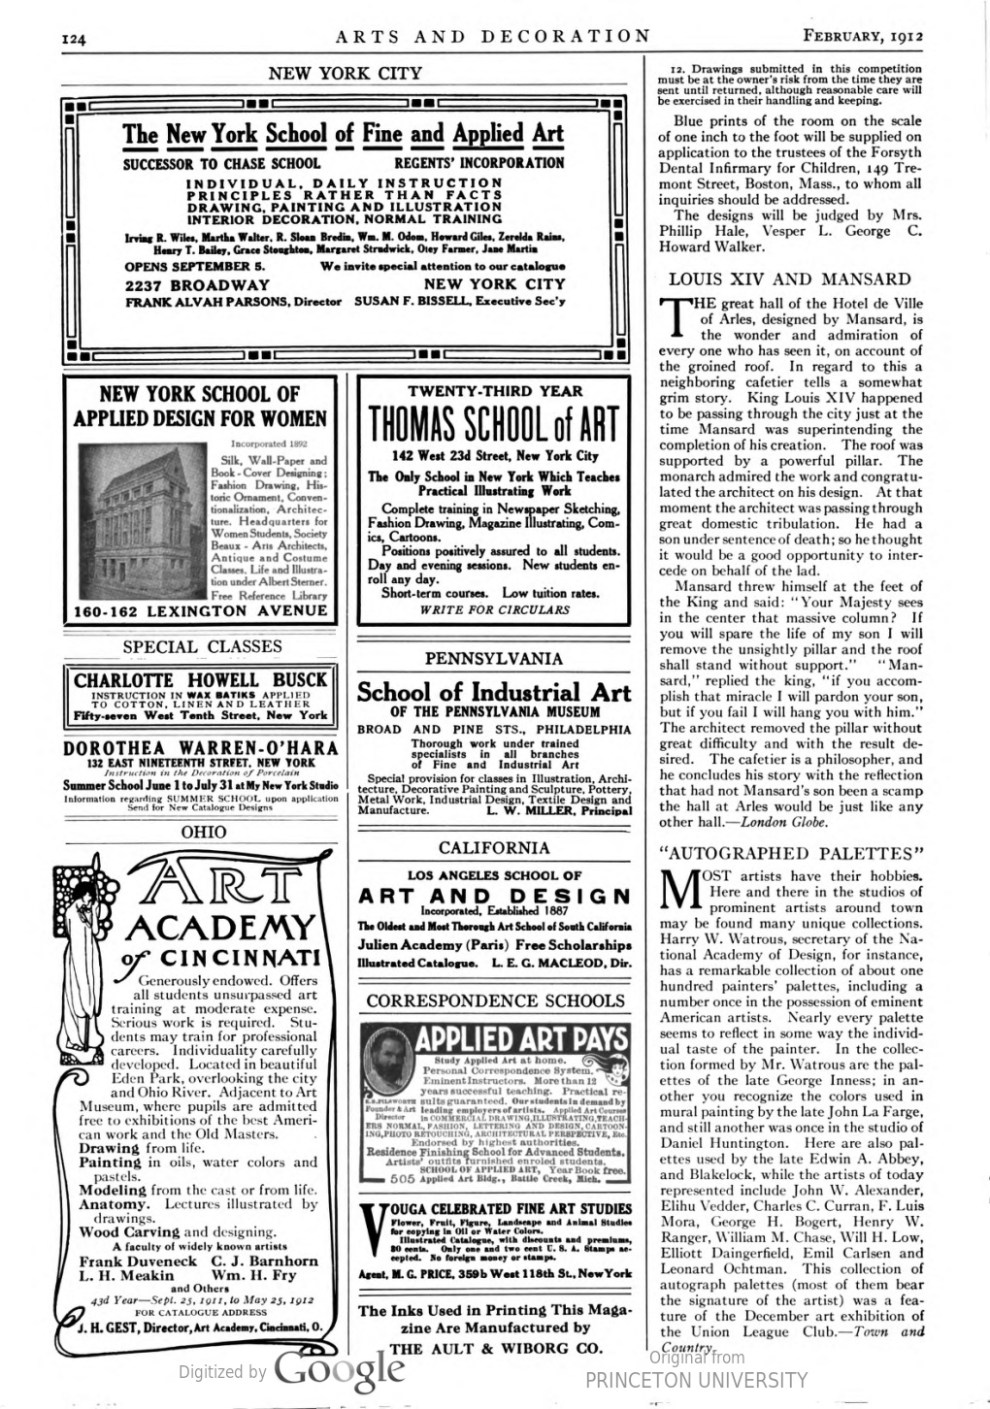 "Arts & Decoration, New York, NY, ""Autographed Palettes"", Volume 2, Number 4, February, 1912, page 124, not illustrated"